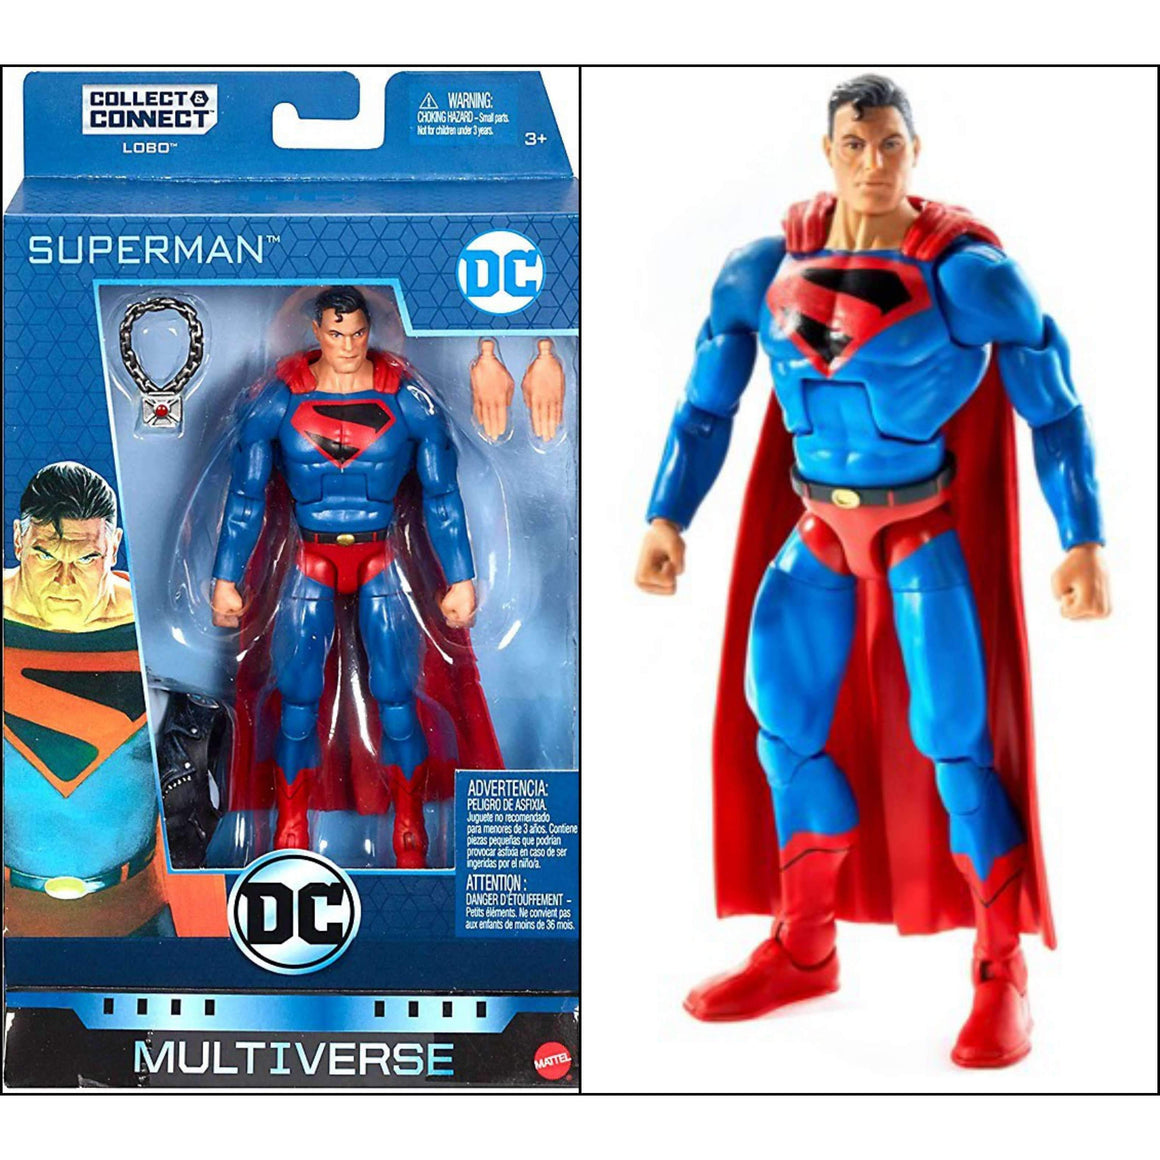 DC Comics Multiverse Wave 10 (Collect & Connect Lobo) - Superman (Kingdom Come)